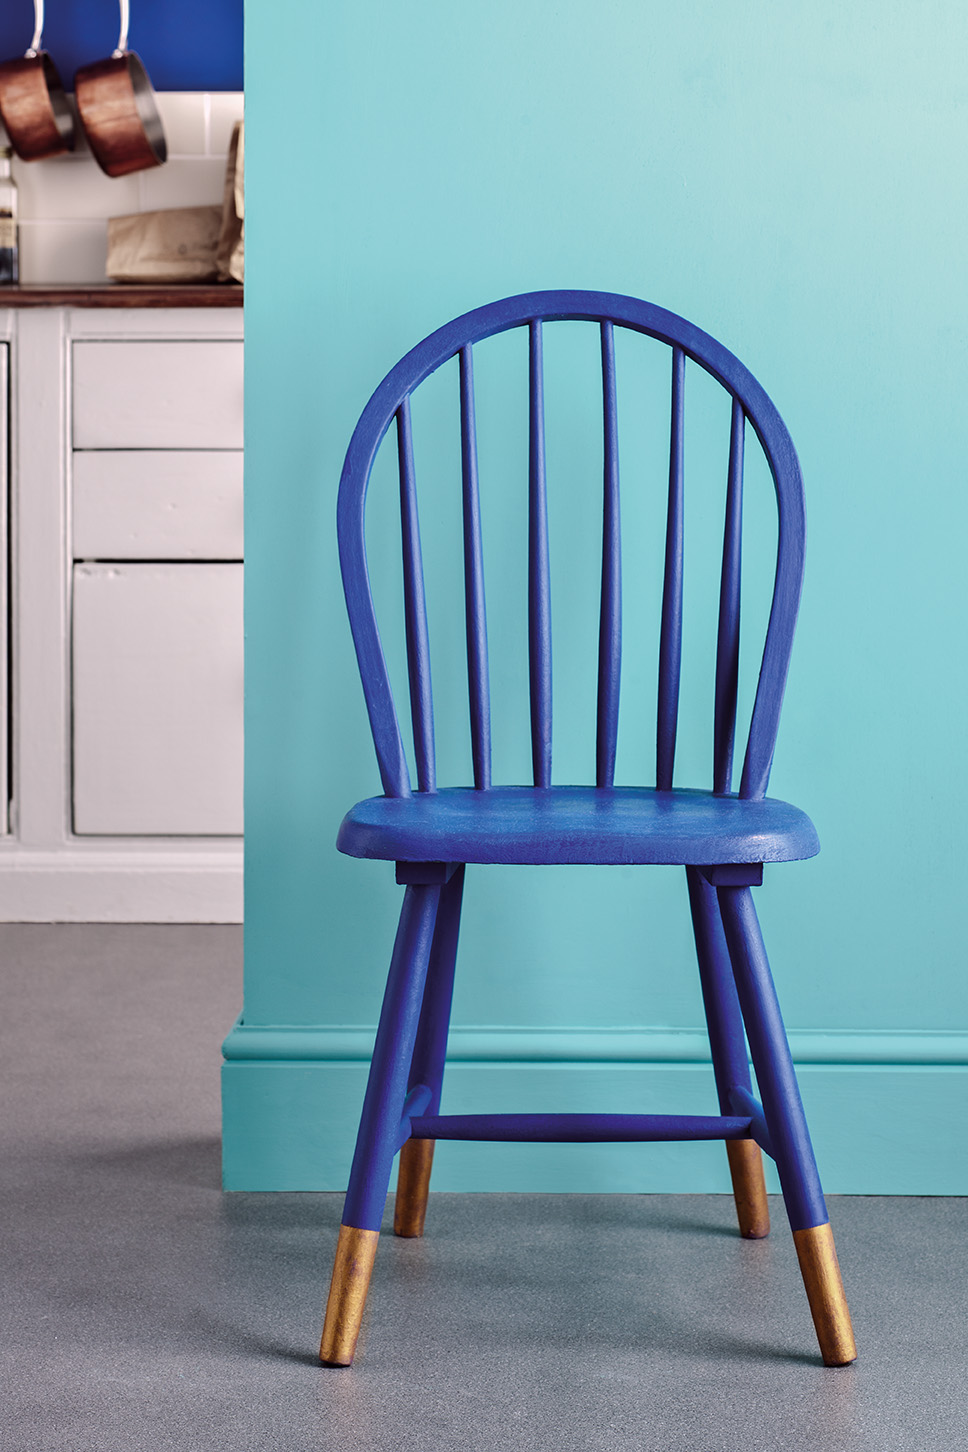 How To Upcycle Furniture With Paint